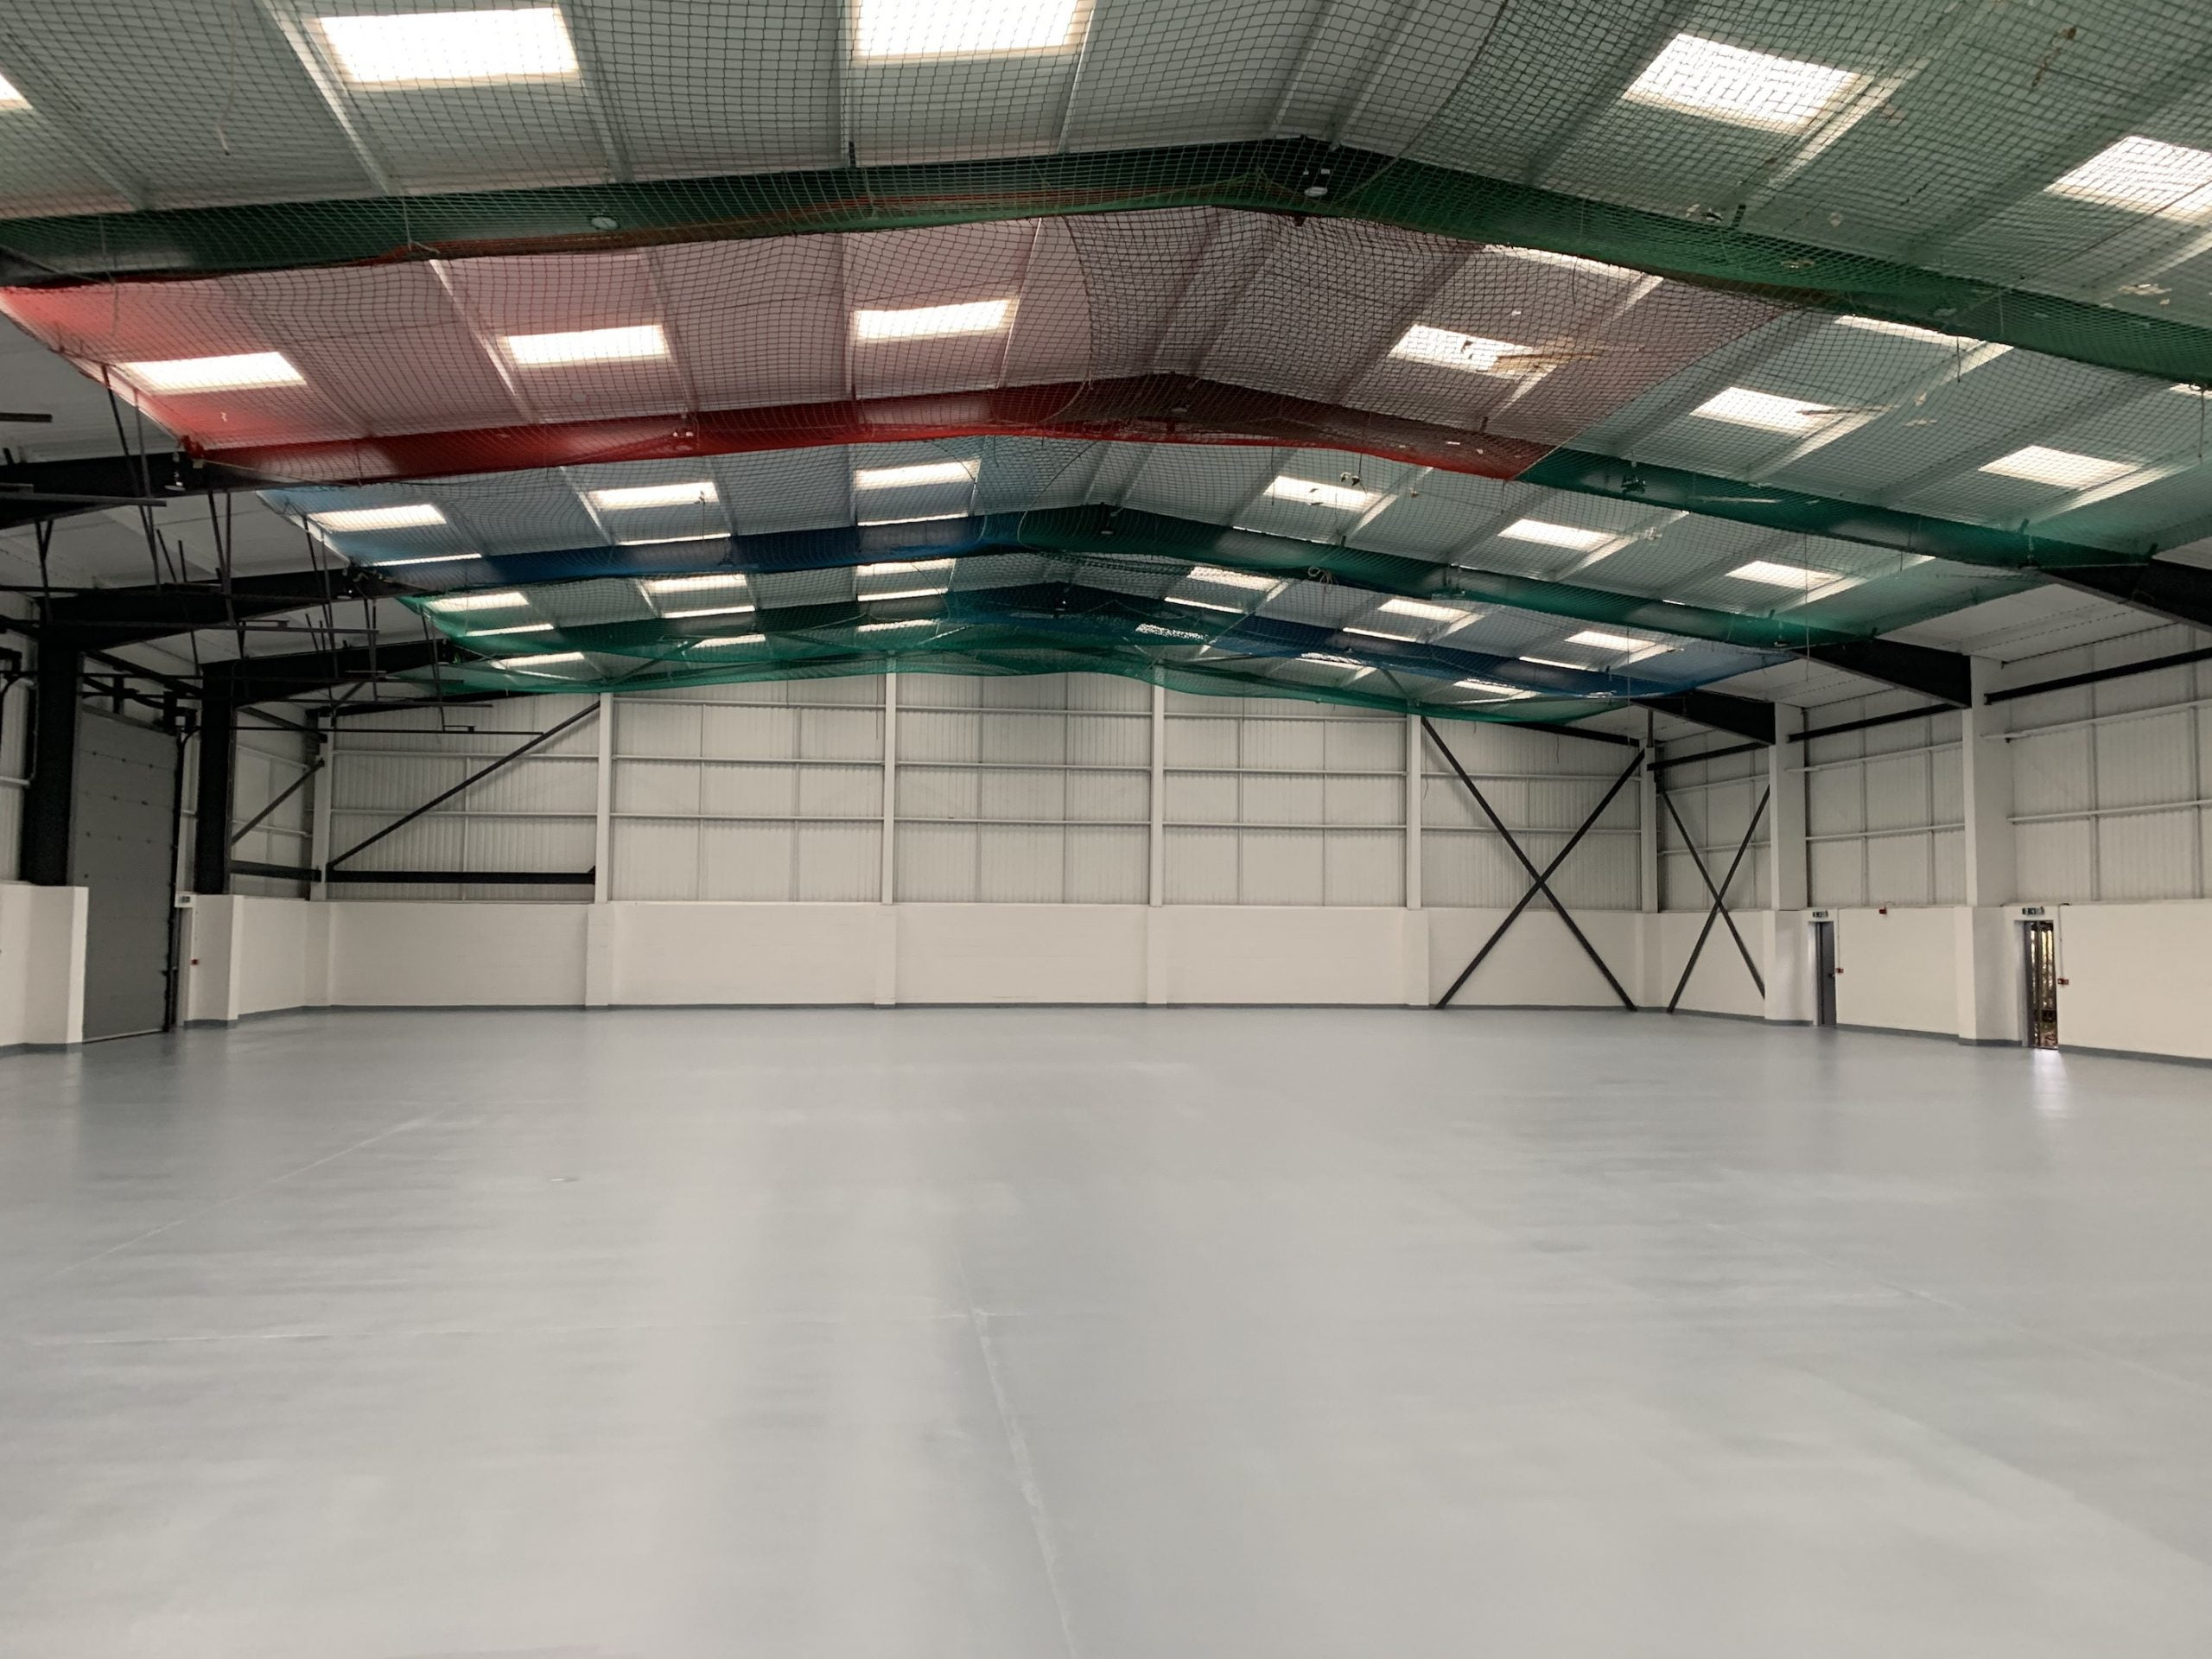 Refurbishment Works at Coventry Industry Estate